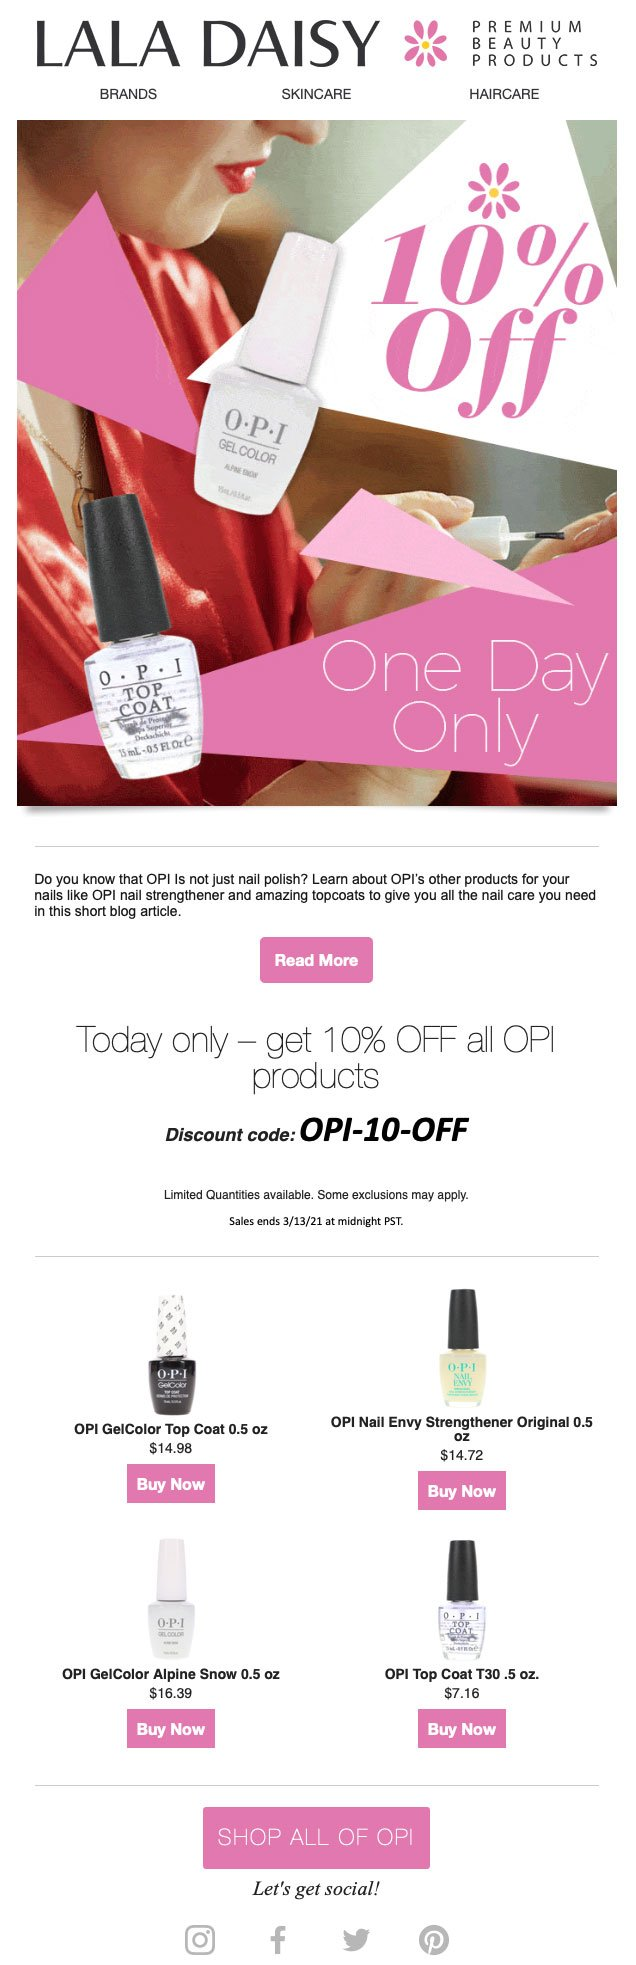 OPI Products Email Design